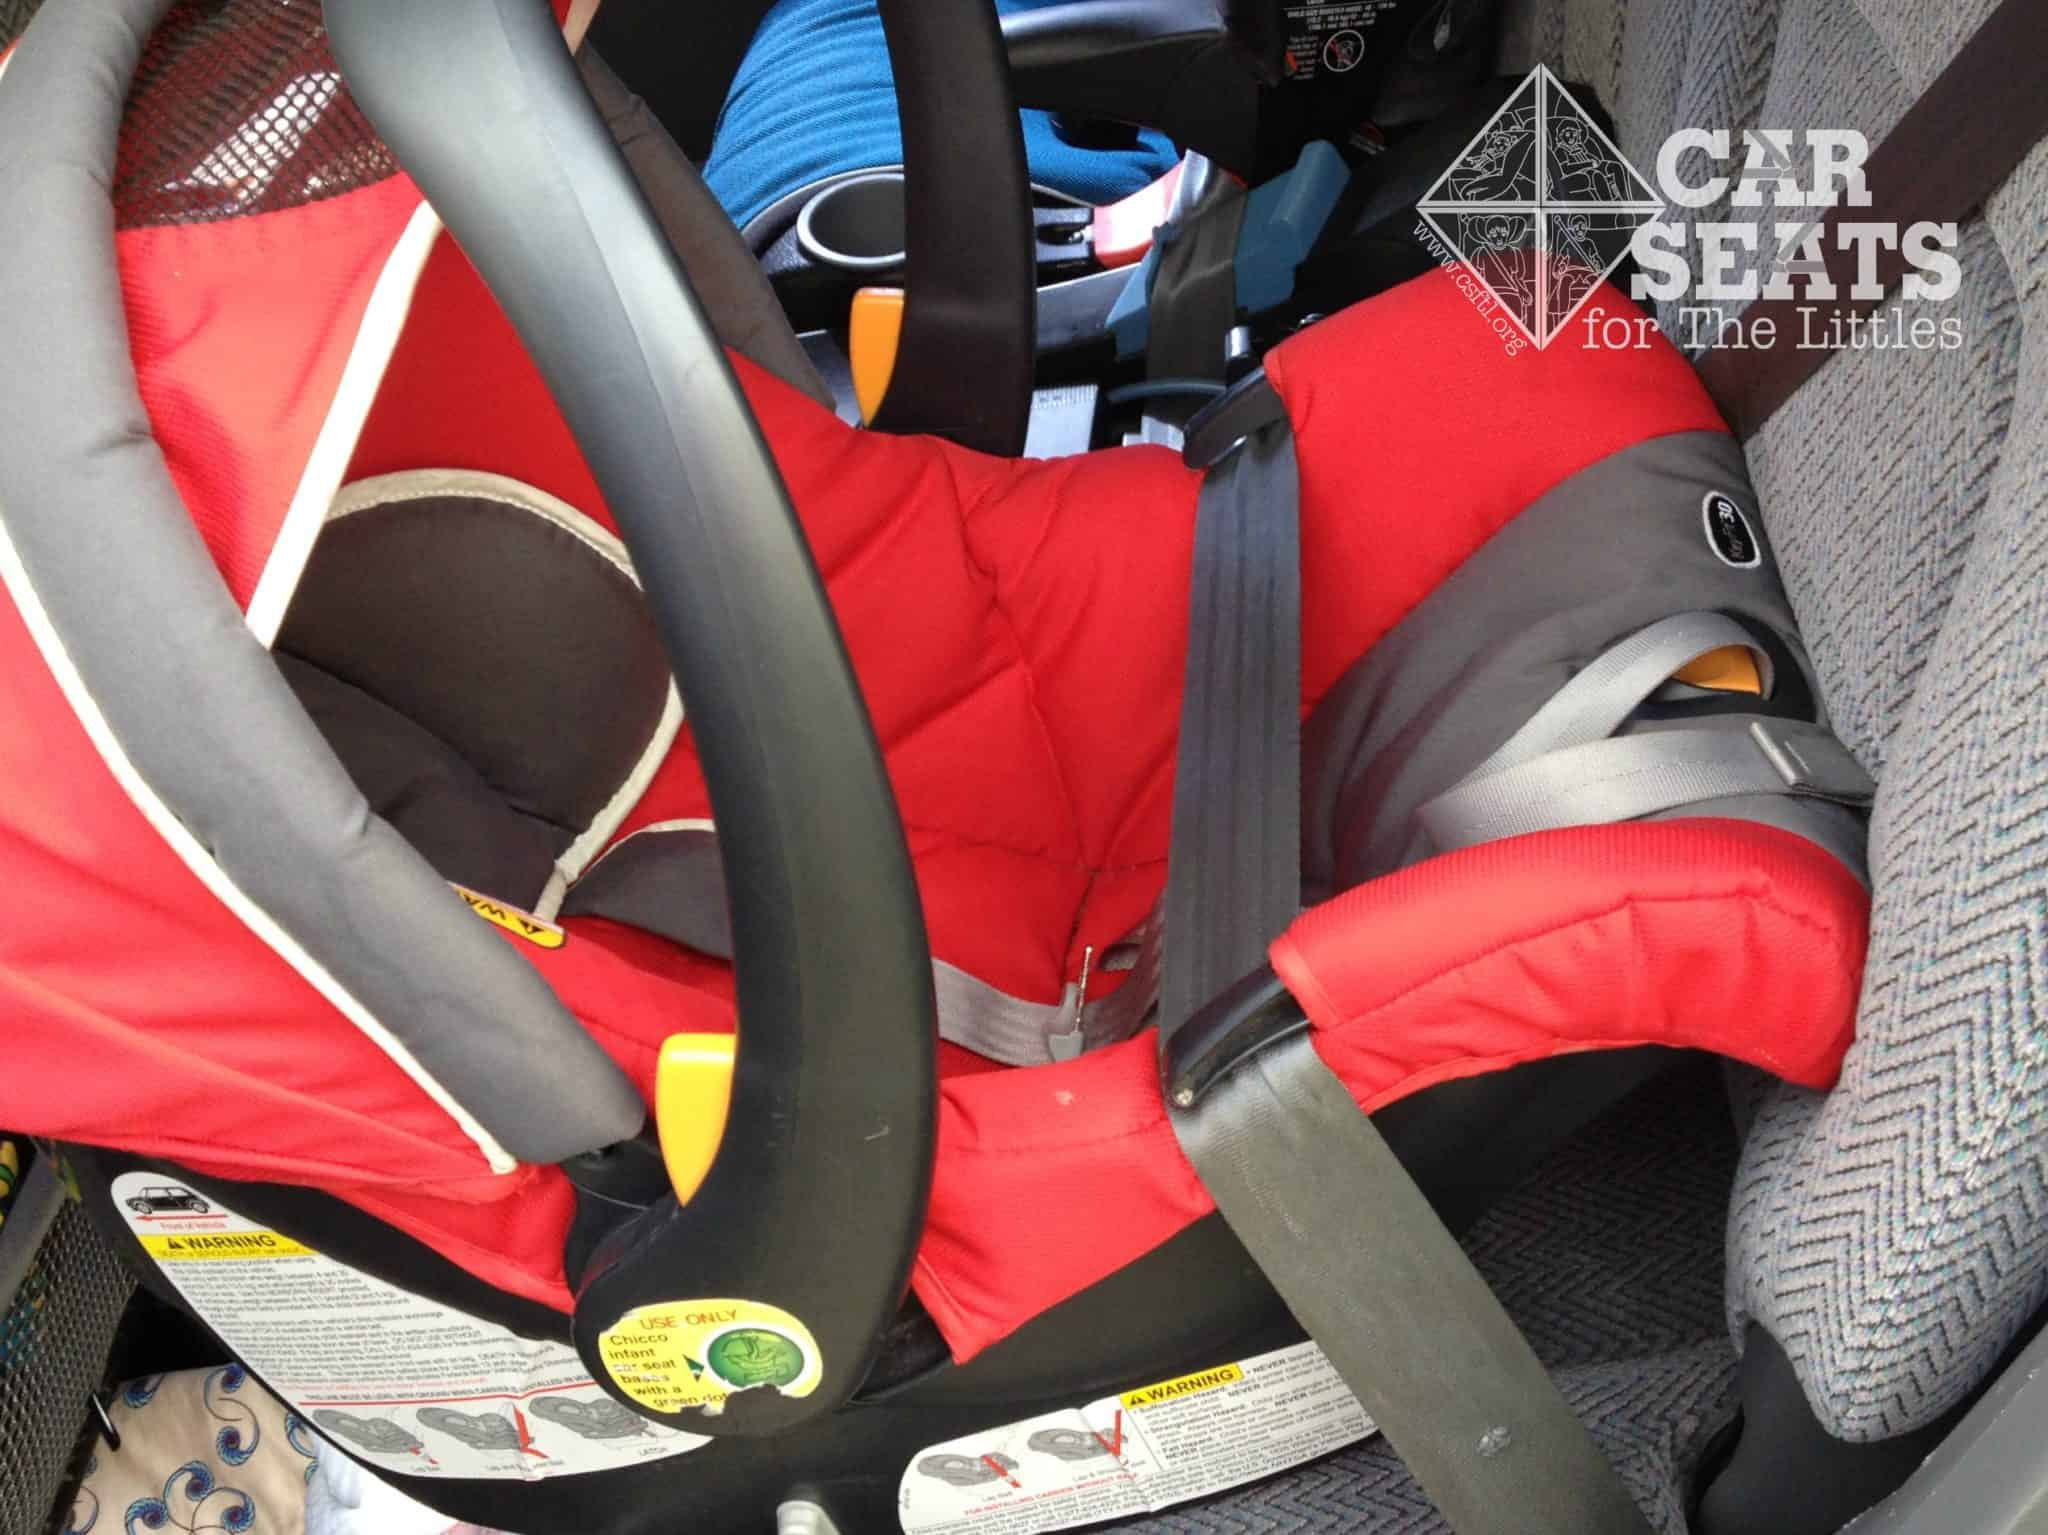 Chicco KeyFit 30 Review - Car Seats For The Littles